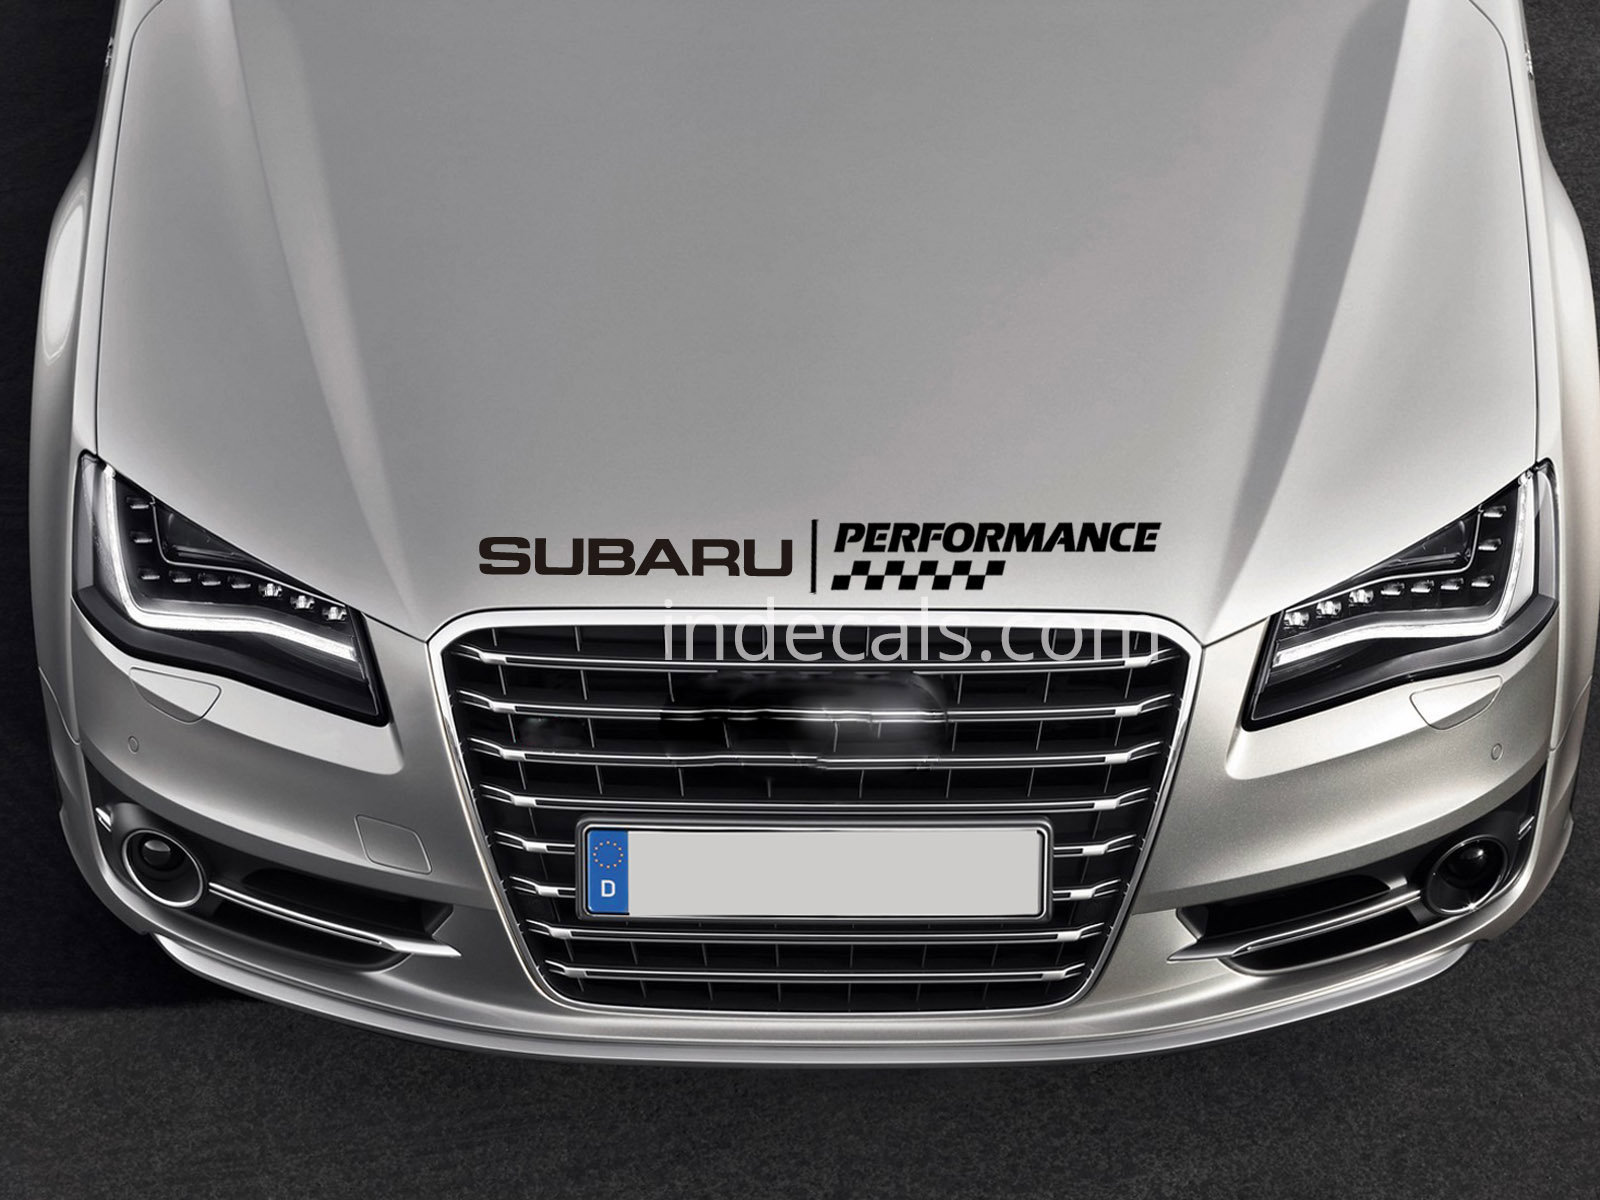 1 x Subaru Performance Sticker for Bonnet - Black